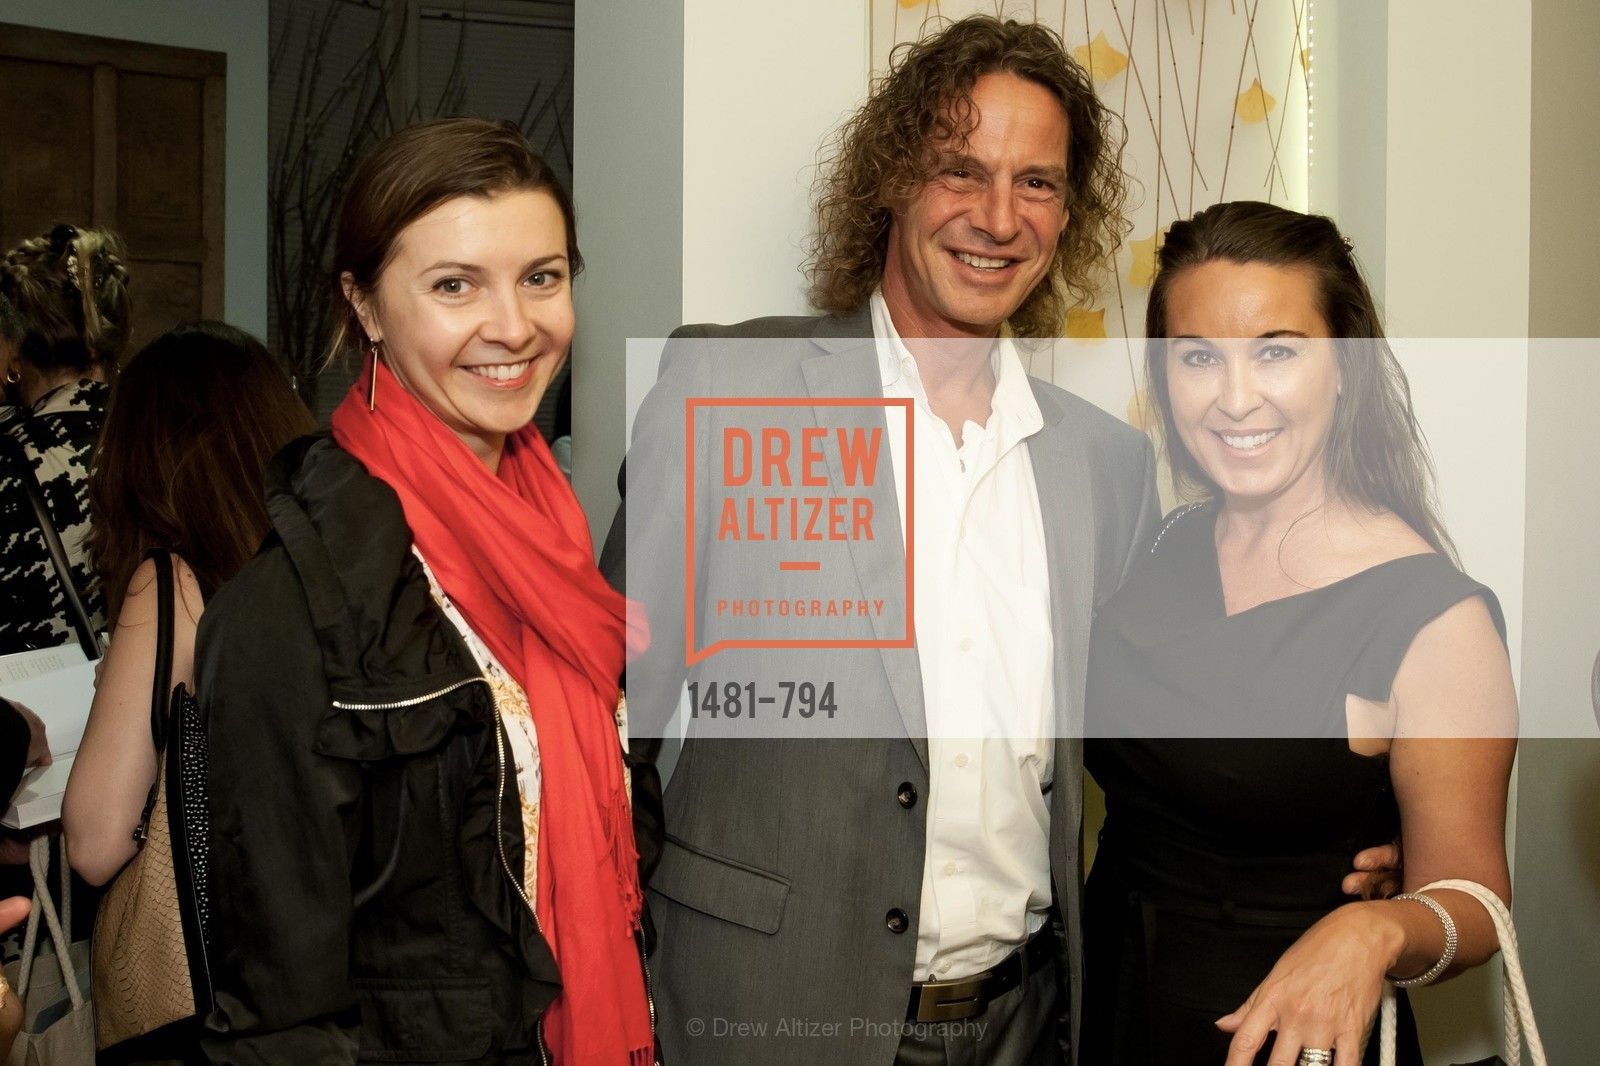 Liana Durtsava, Christoph Opperman, Carla Biondi, EPI CENTER MedSpa Anniversary and Launch of REPLETE - Evening Celebration, US, April 22nd, 2015,Drew Altizer, Drew Altizer Photography, full-service event agency, private events, San Francisco photographer, photographer California